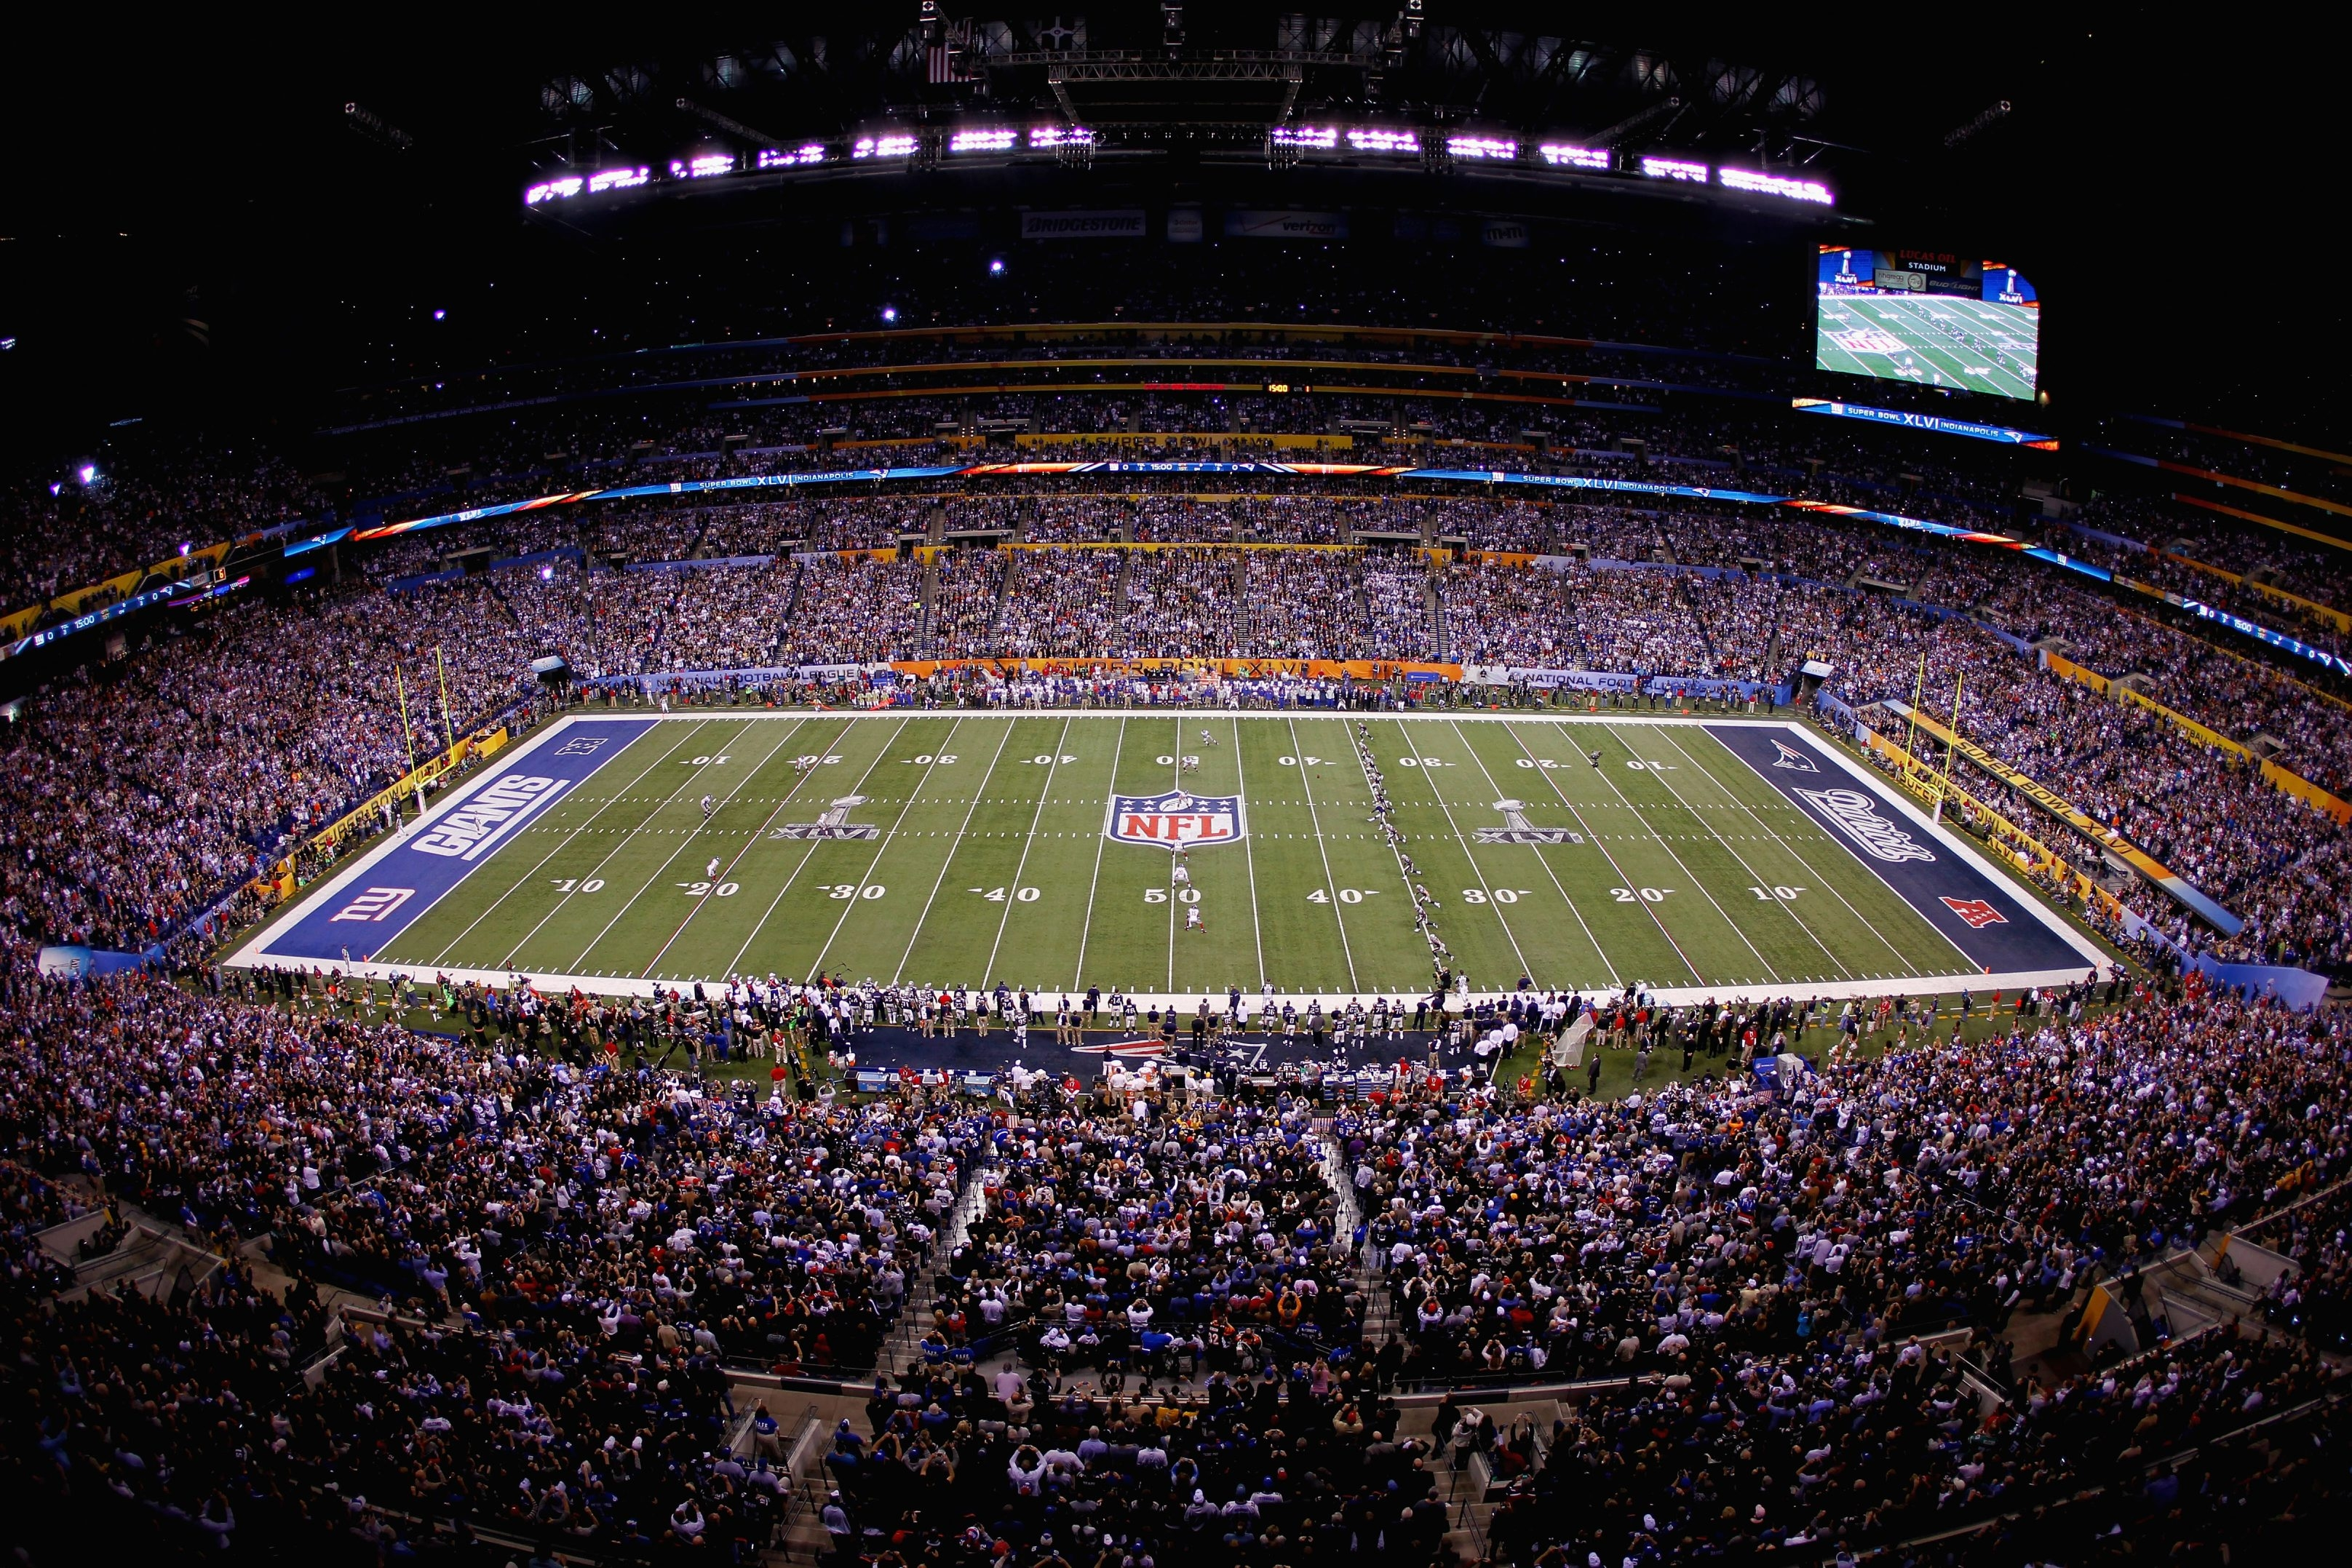 Lucas Oil Stadium in Indianapolis, which opened in 2008, features a retractable roof and expandable seating. It hosted the 2012 Super Bowl and has attracted major sporting events, bringing in tourism dollars.